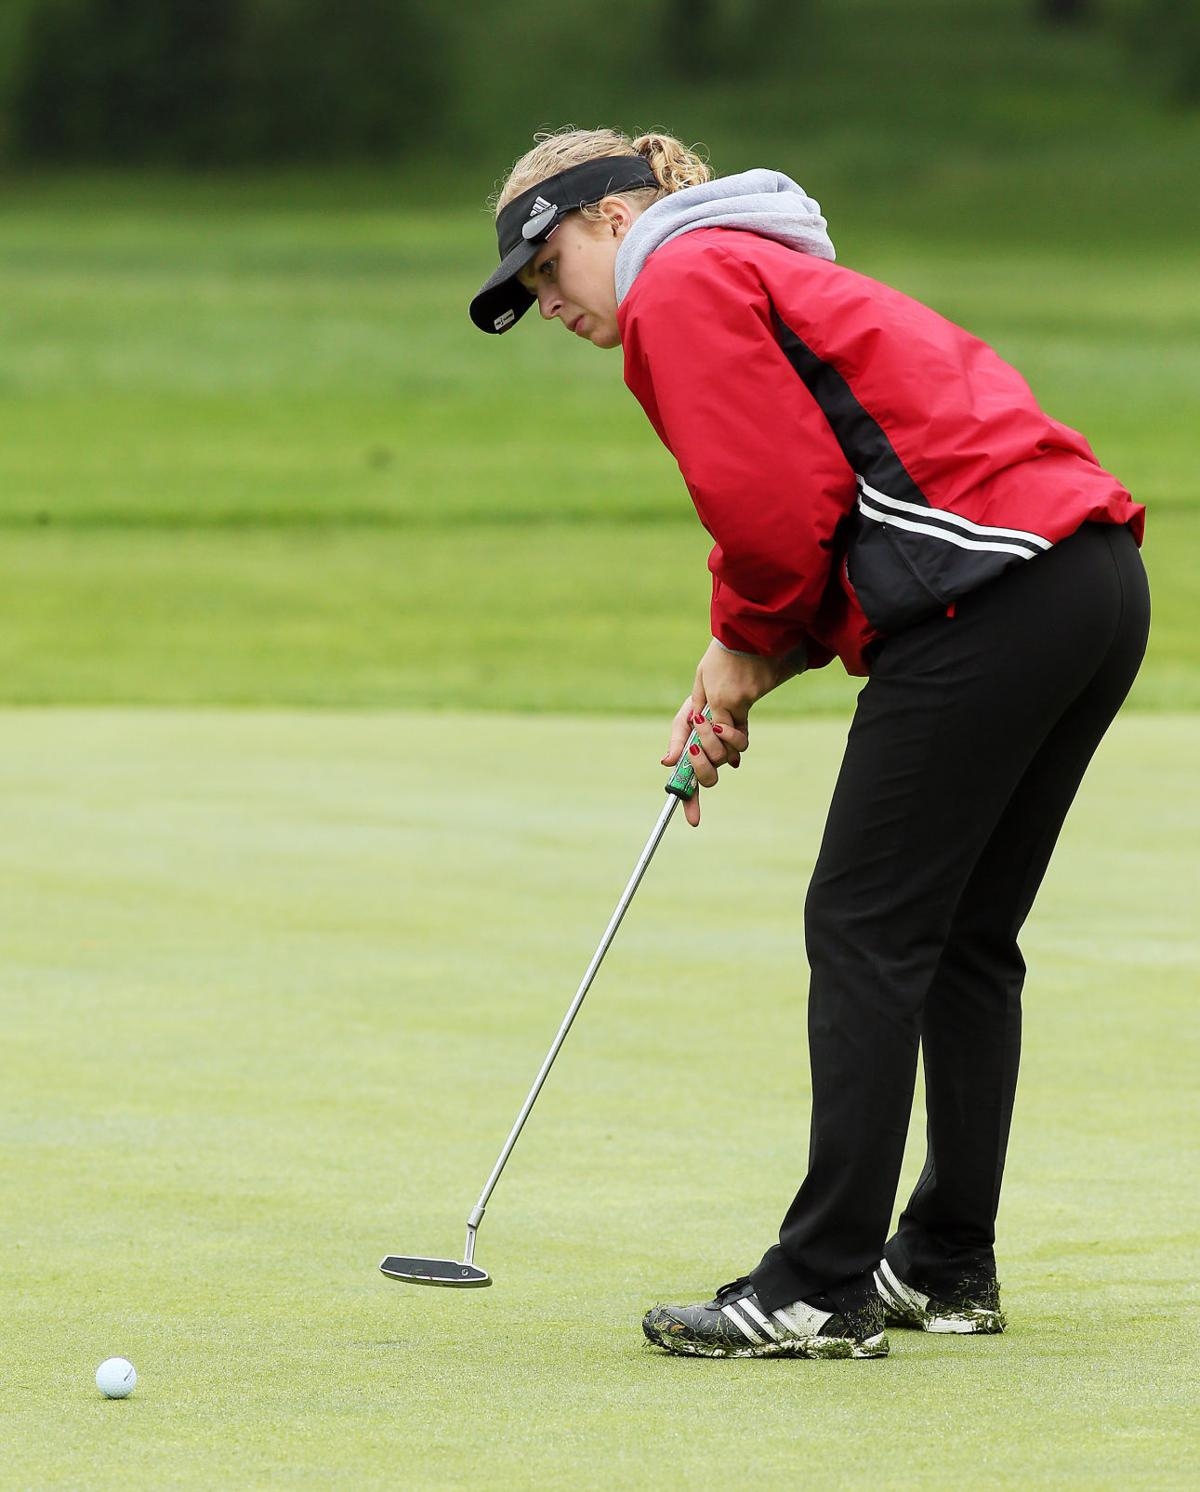 052118-qct-girls-golf-regional-009